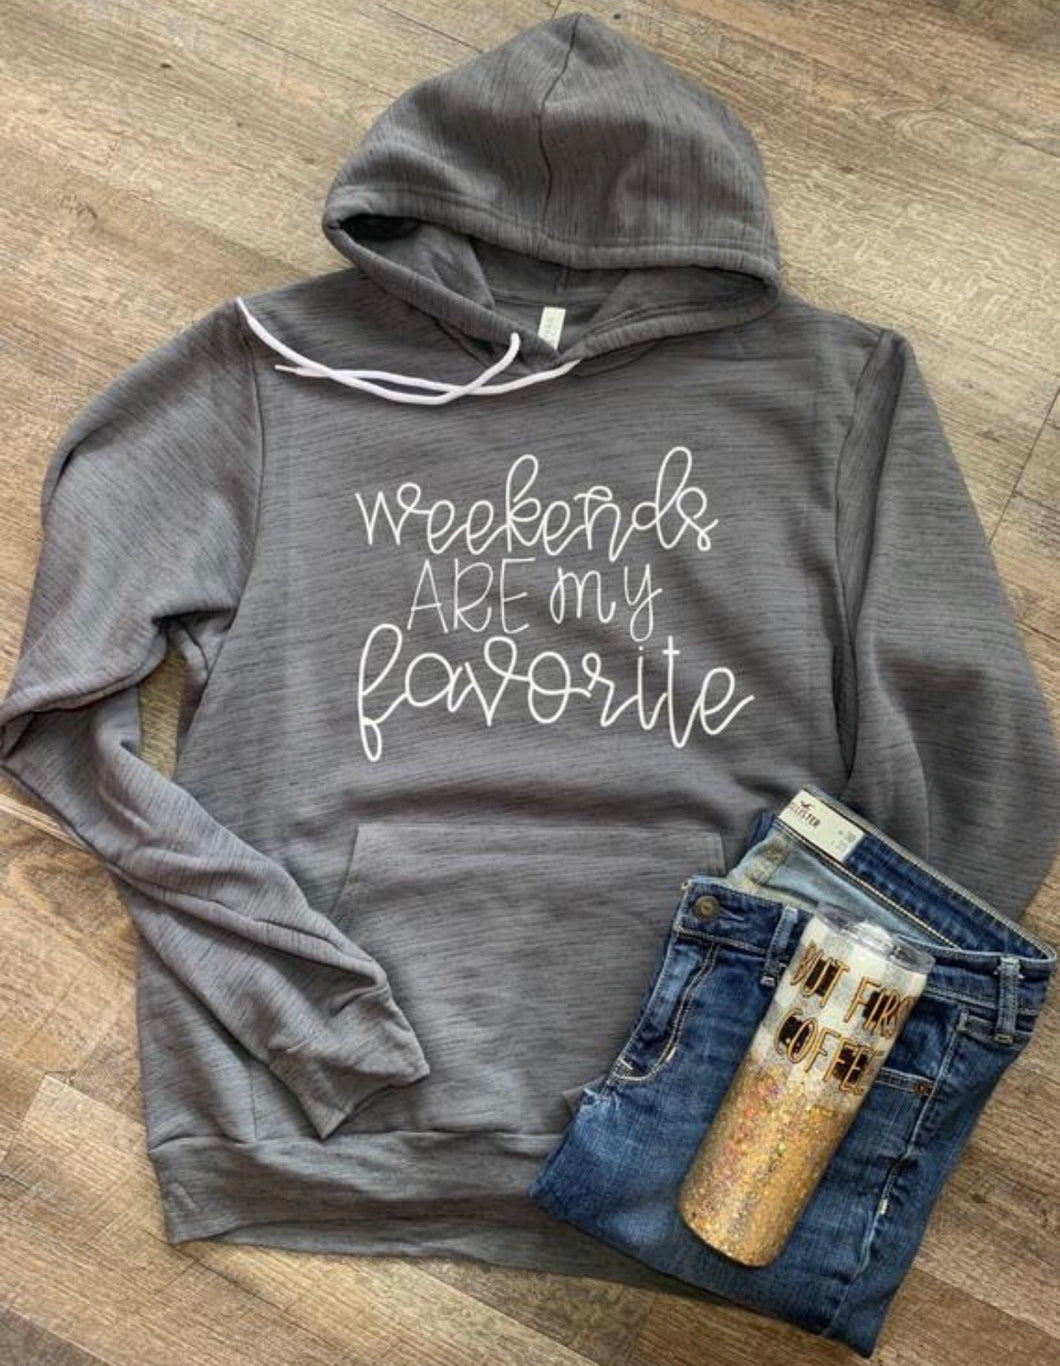 Weekends are my favorite. Funny graphic hoodie. Bella canvas marbled gray. Gift. - Mavictoria Designs Hot Press Express